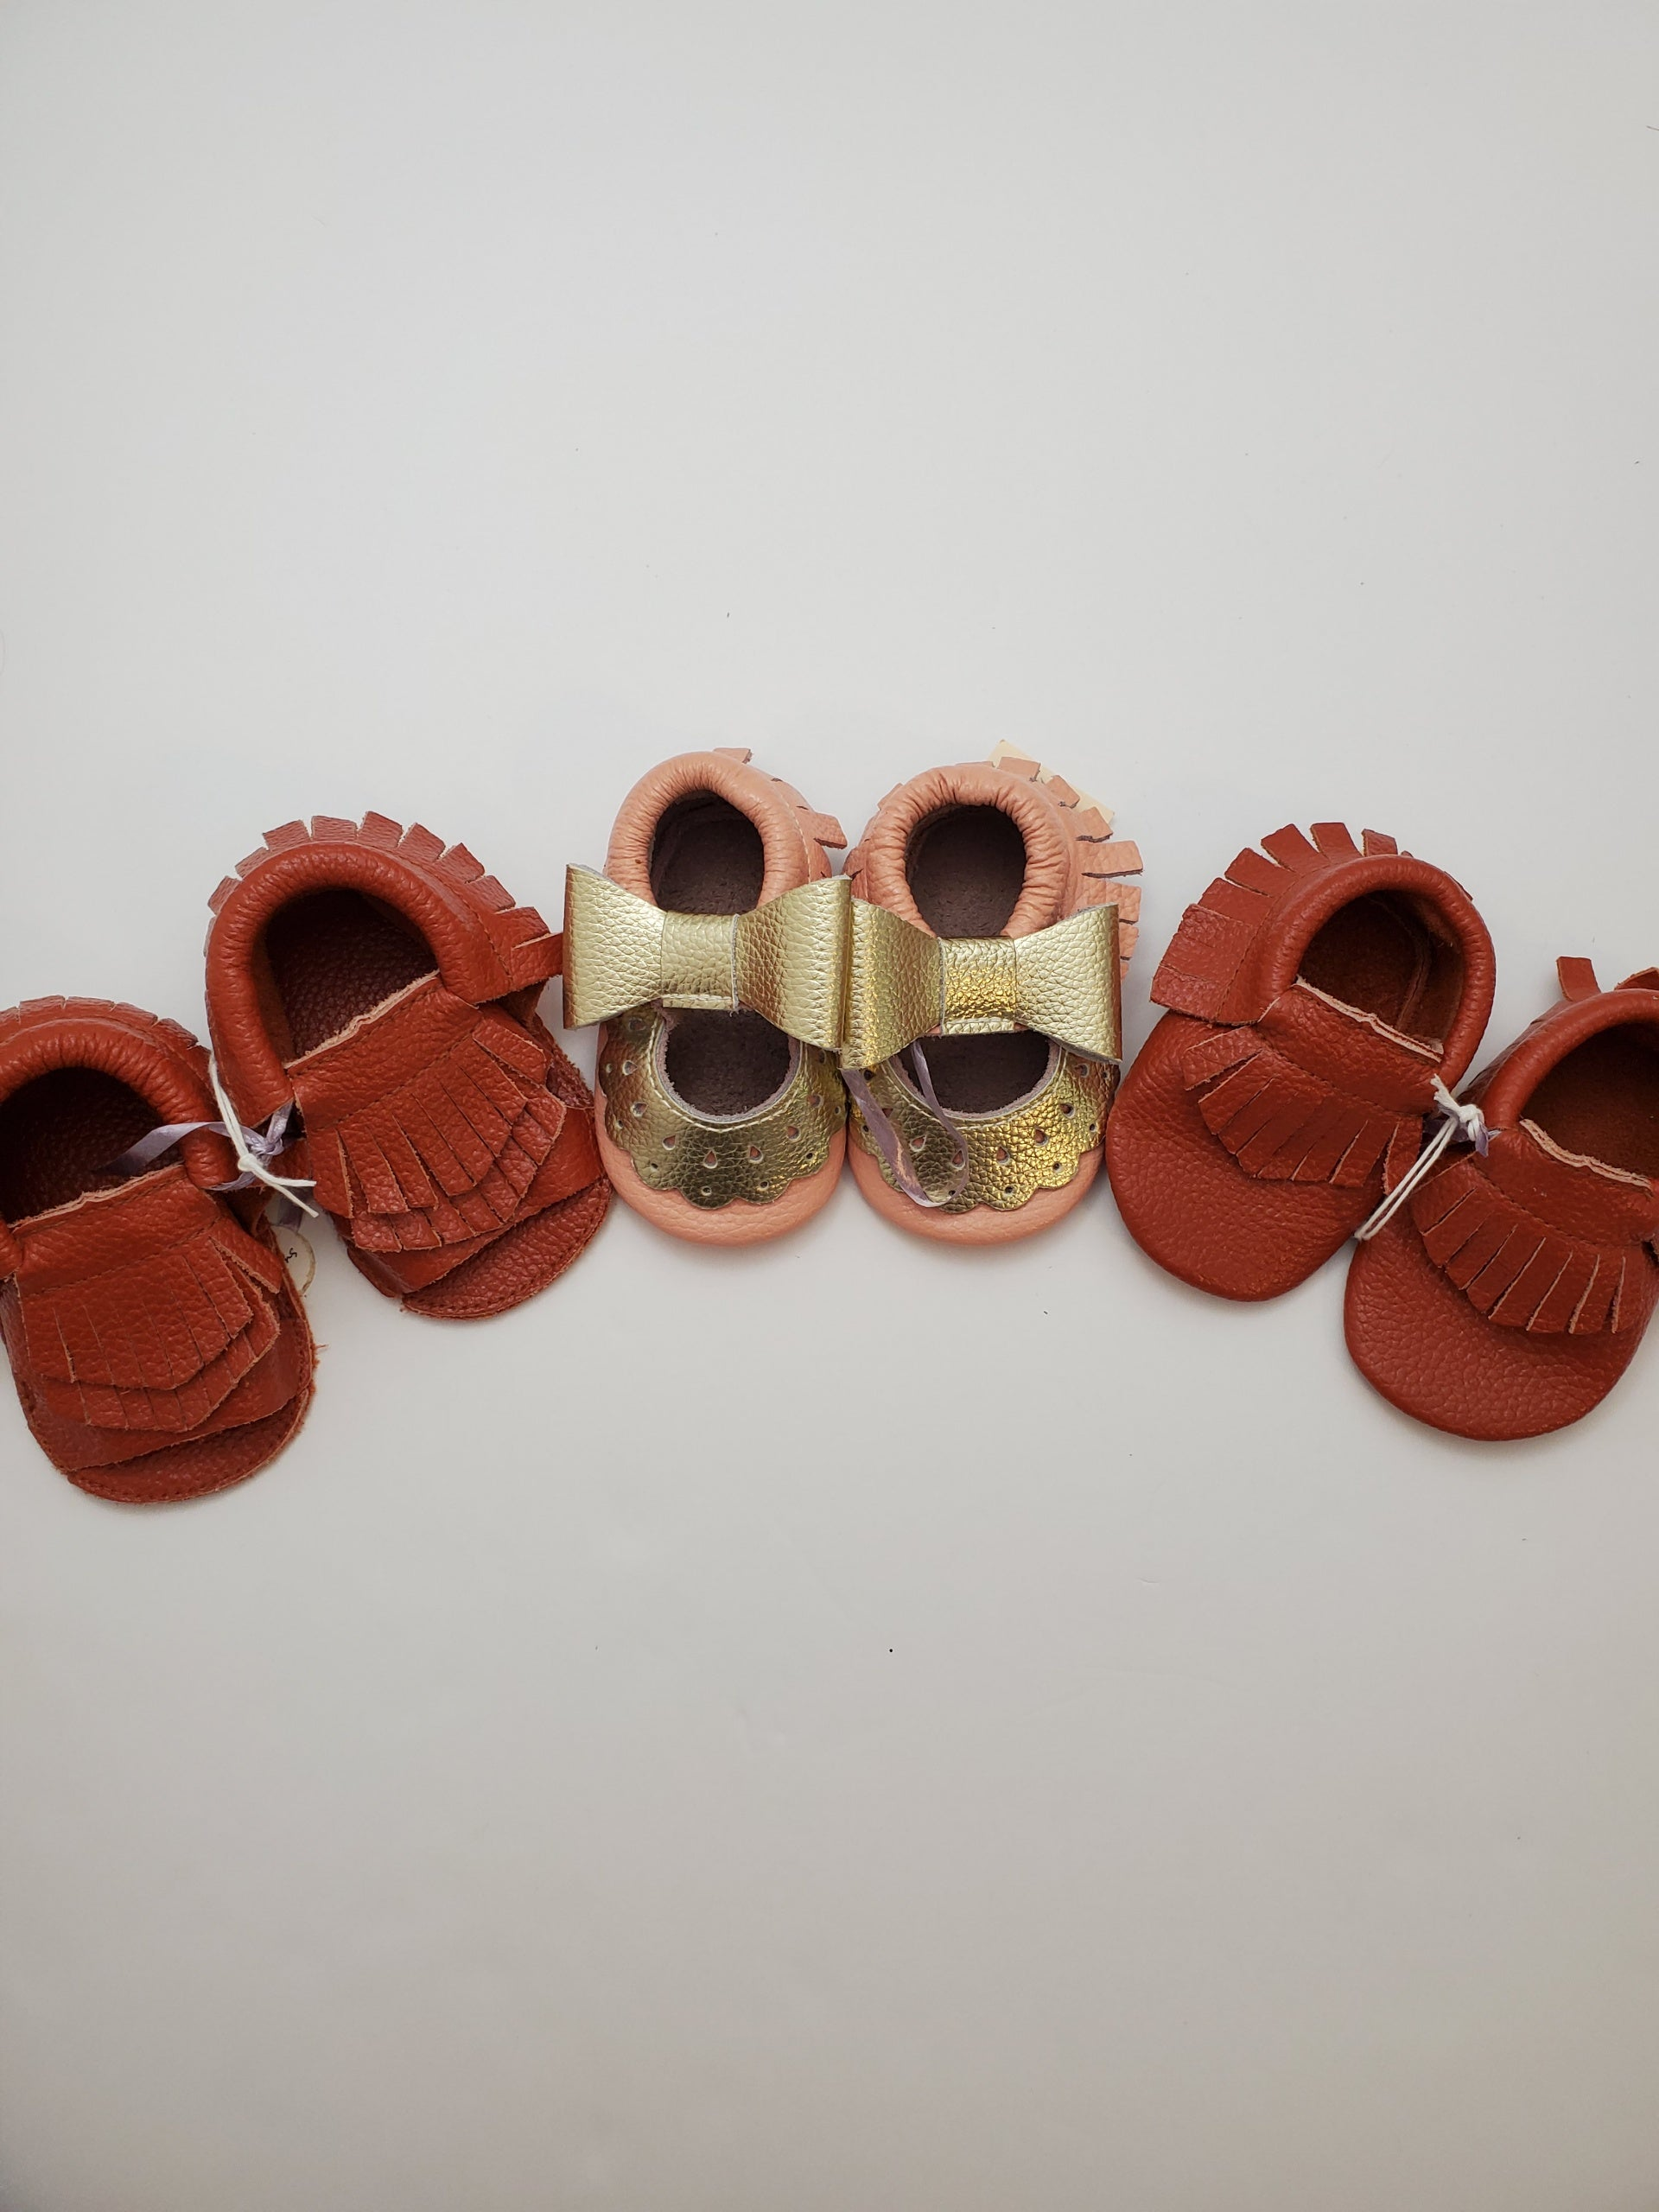 Sophia Sky Handmade Leather Baby Moccasins - Multiple Styles